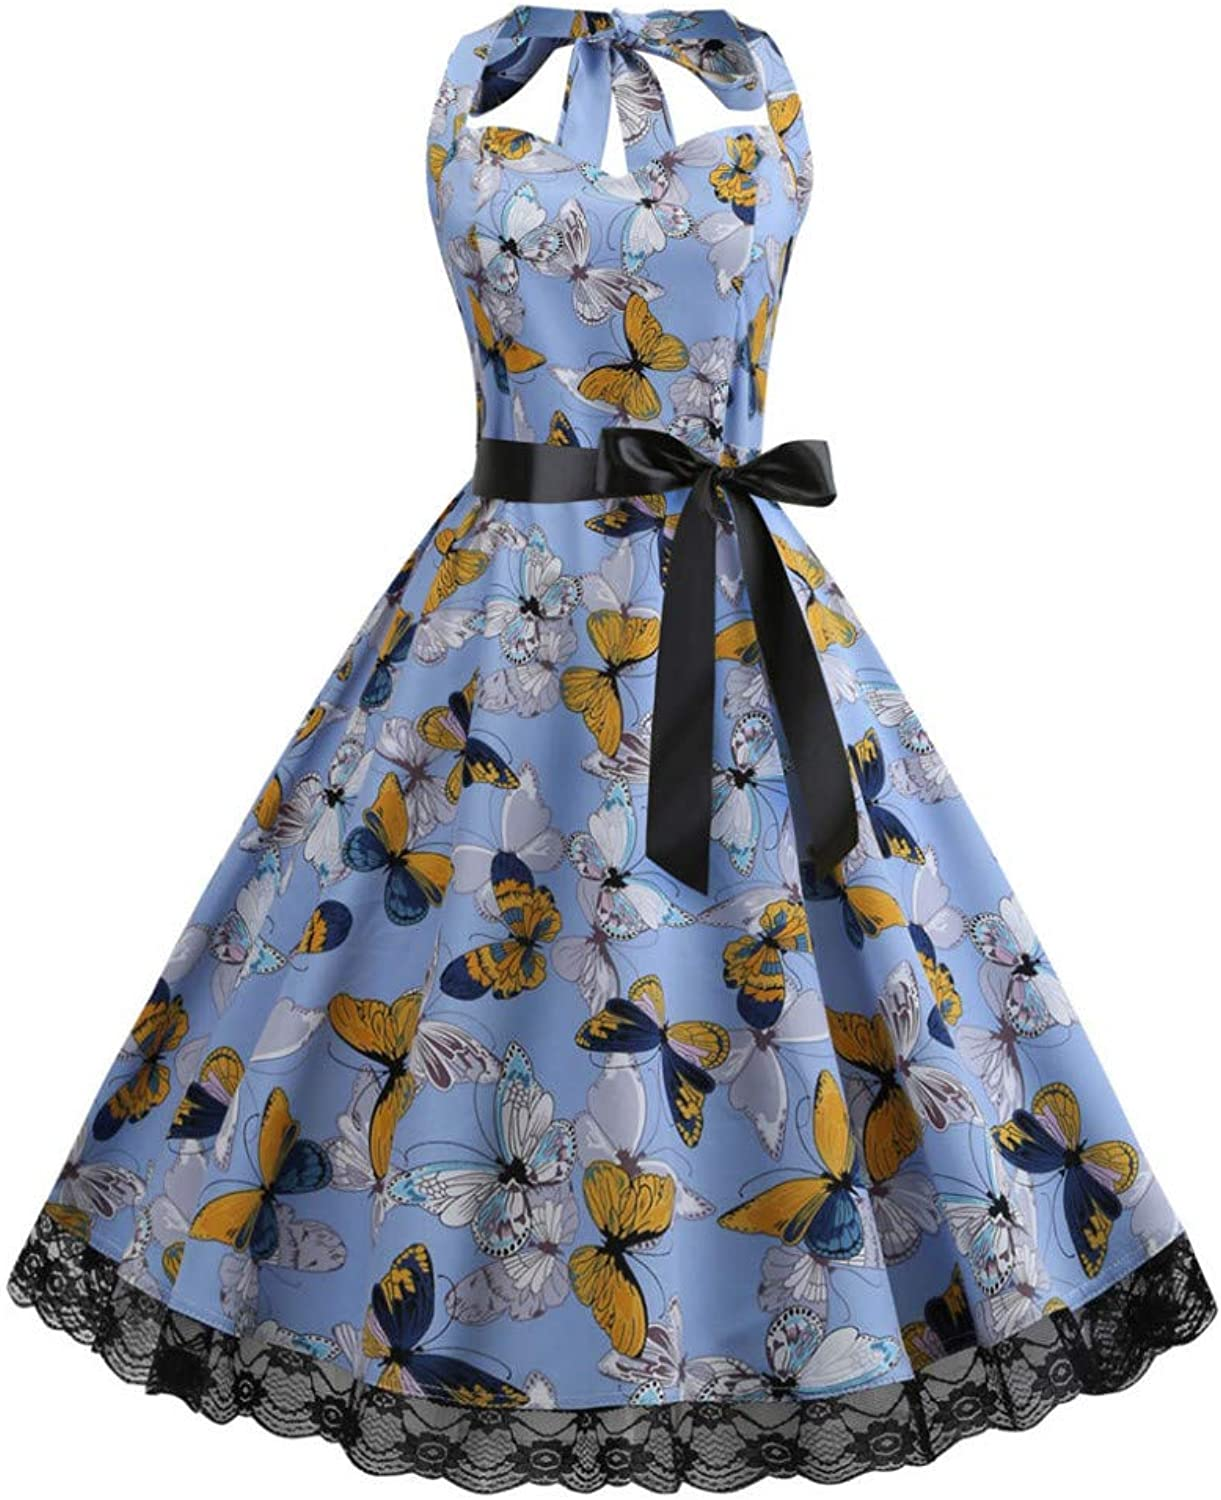 DRLYQWJF Women's Vintage Sleeveless Halter Print Lace Evening Party Prom Swing Dresses bluee Casual Pleated Dress